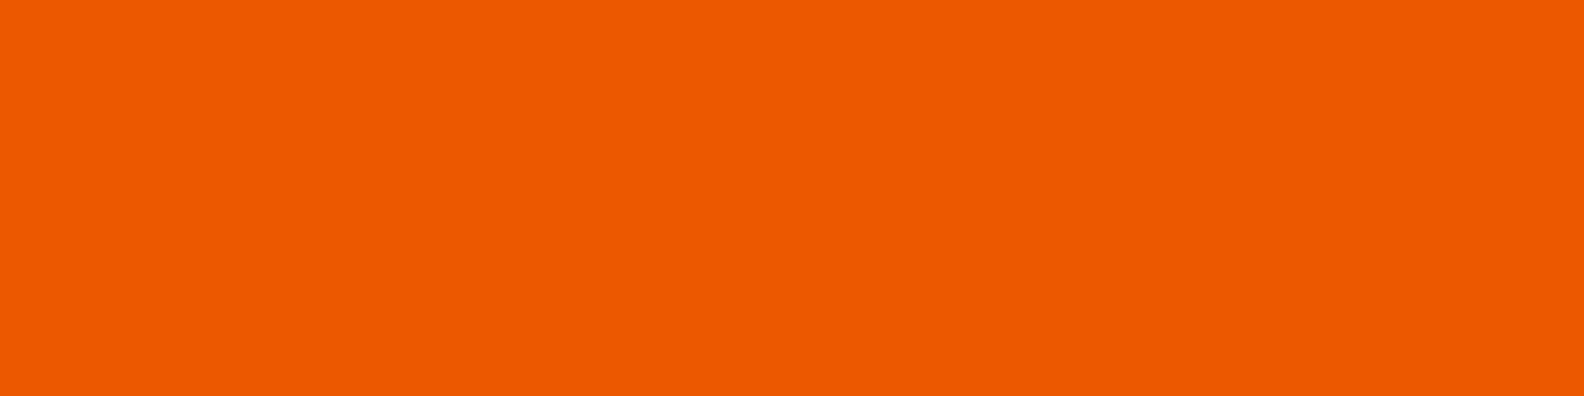 1584x396 Persimmon Solid Color Background